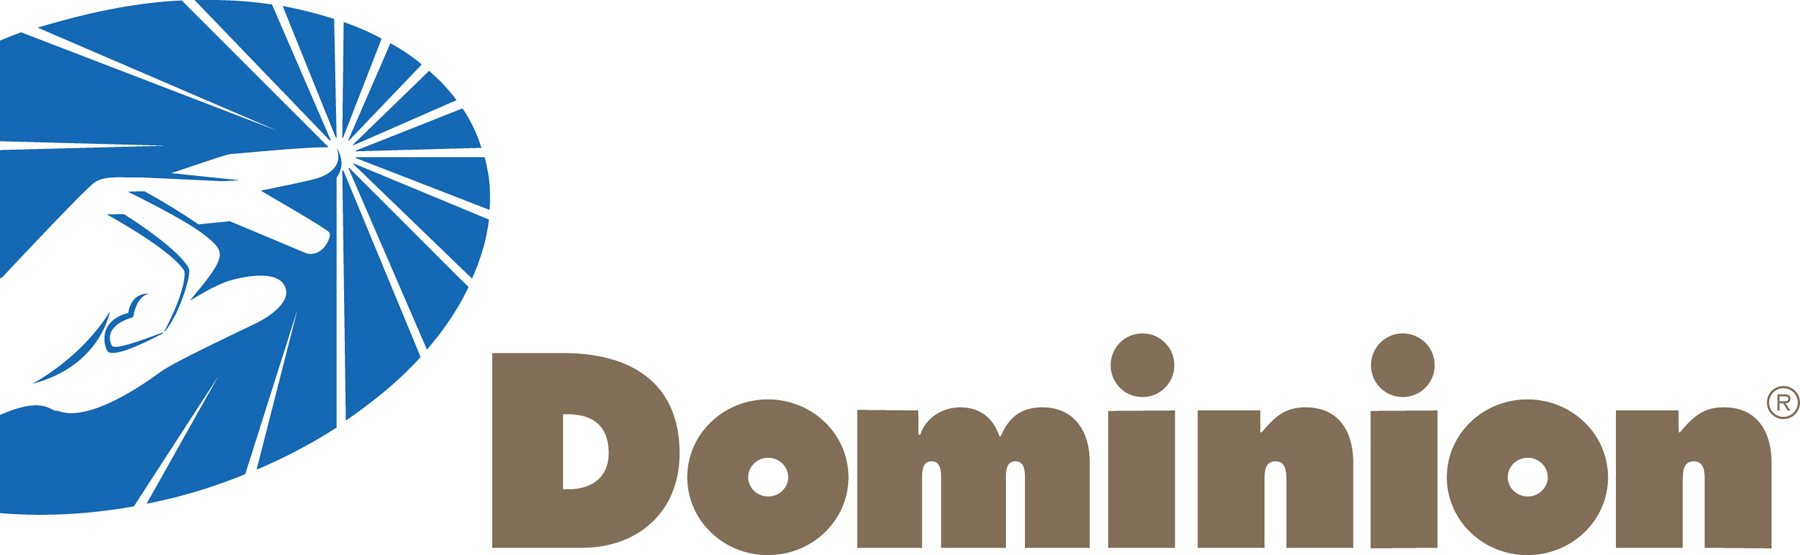 7th annual virginia economic summit virginia chamber of for Domon power release